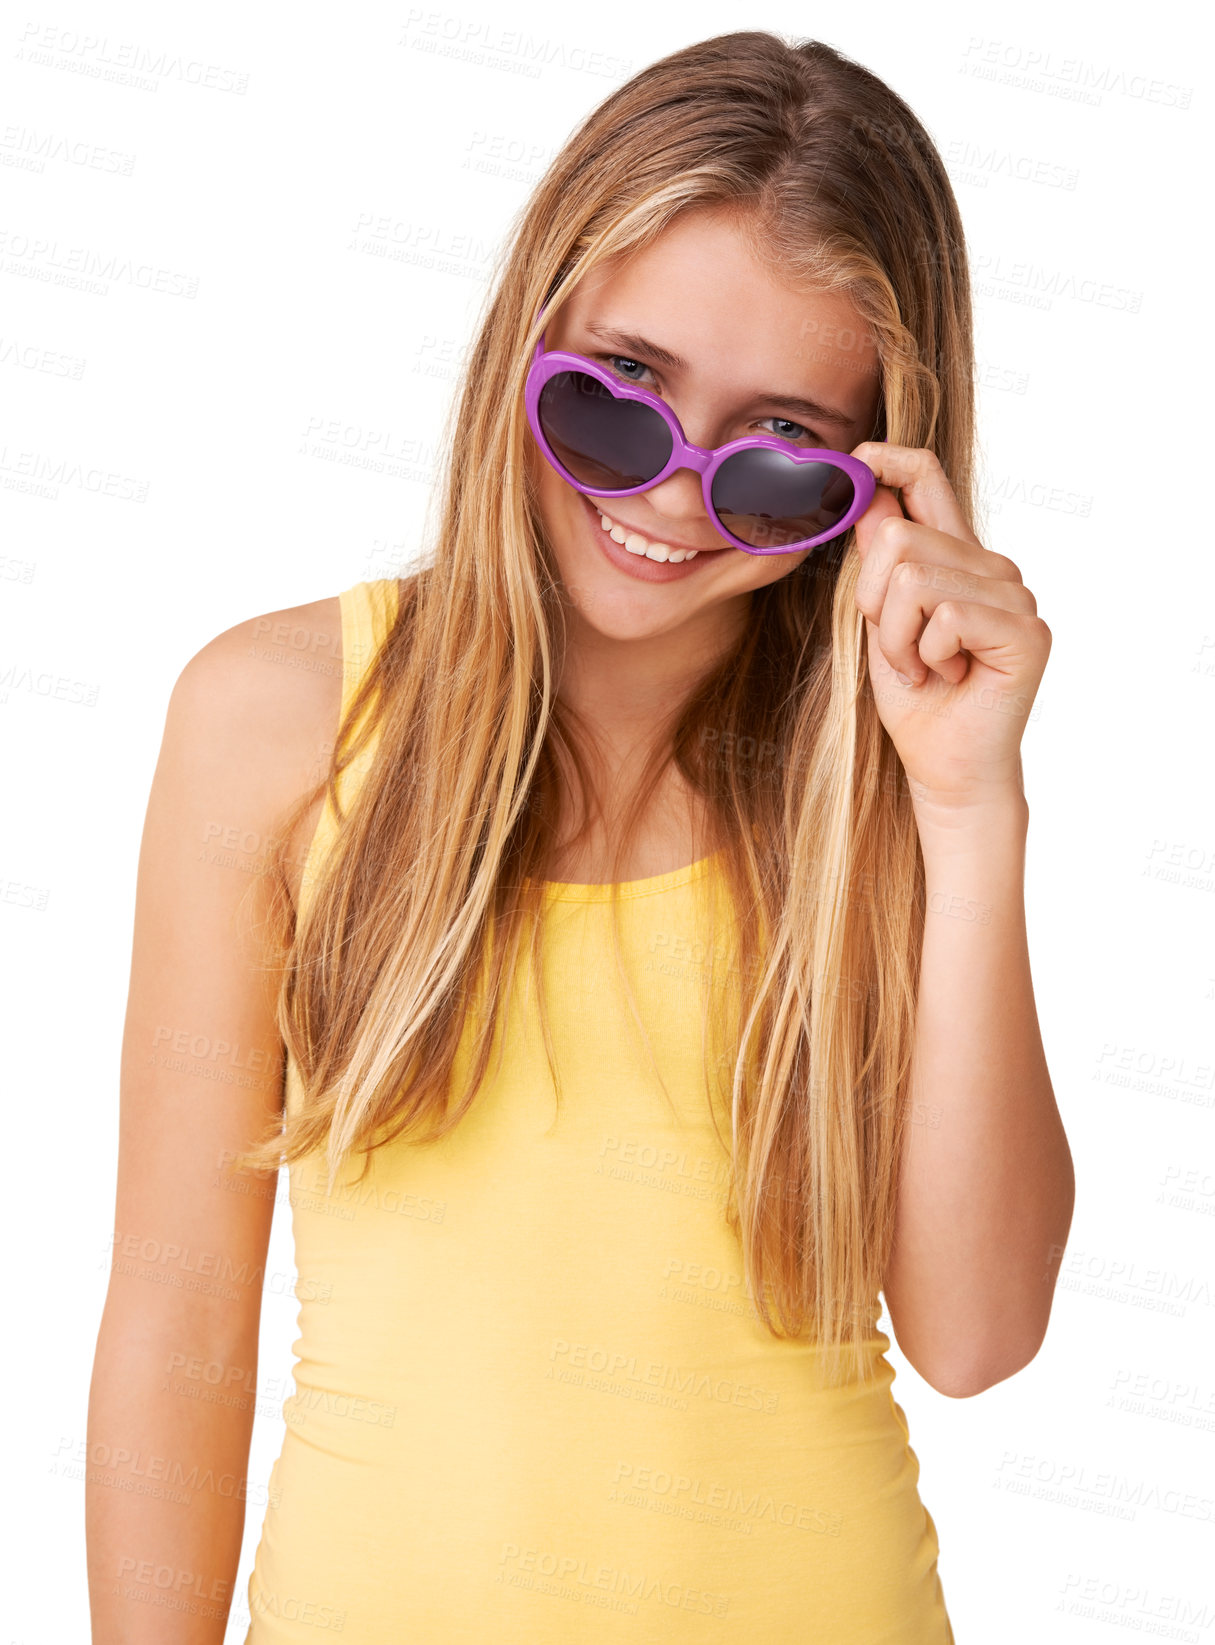 Buy stock photo Portrait of a cute teen girl peering over her heart-shaped glasses